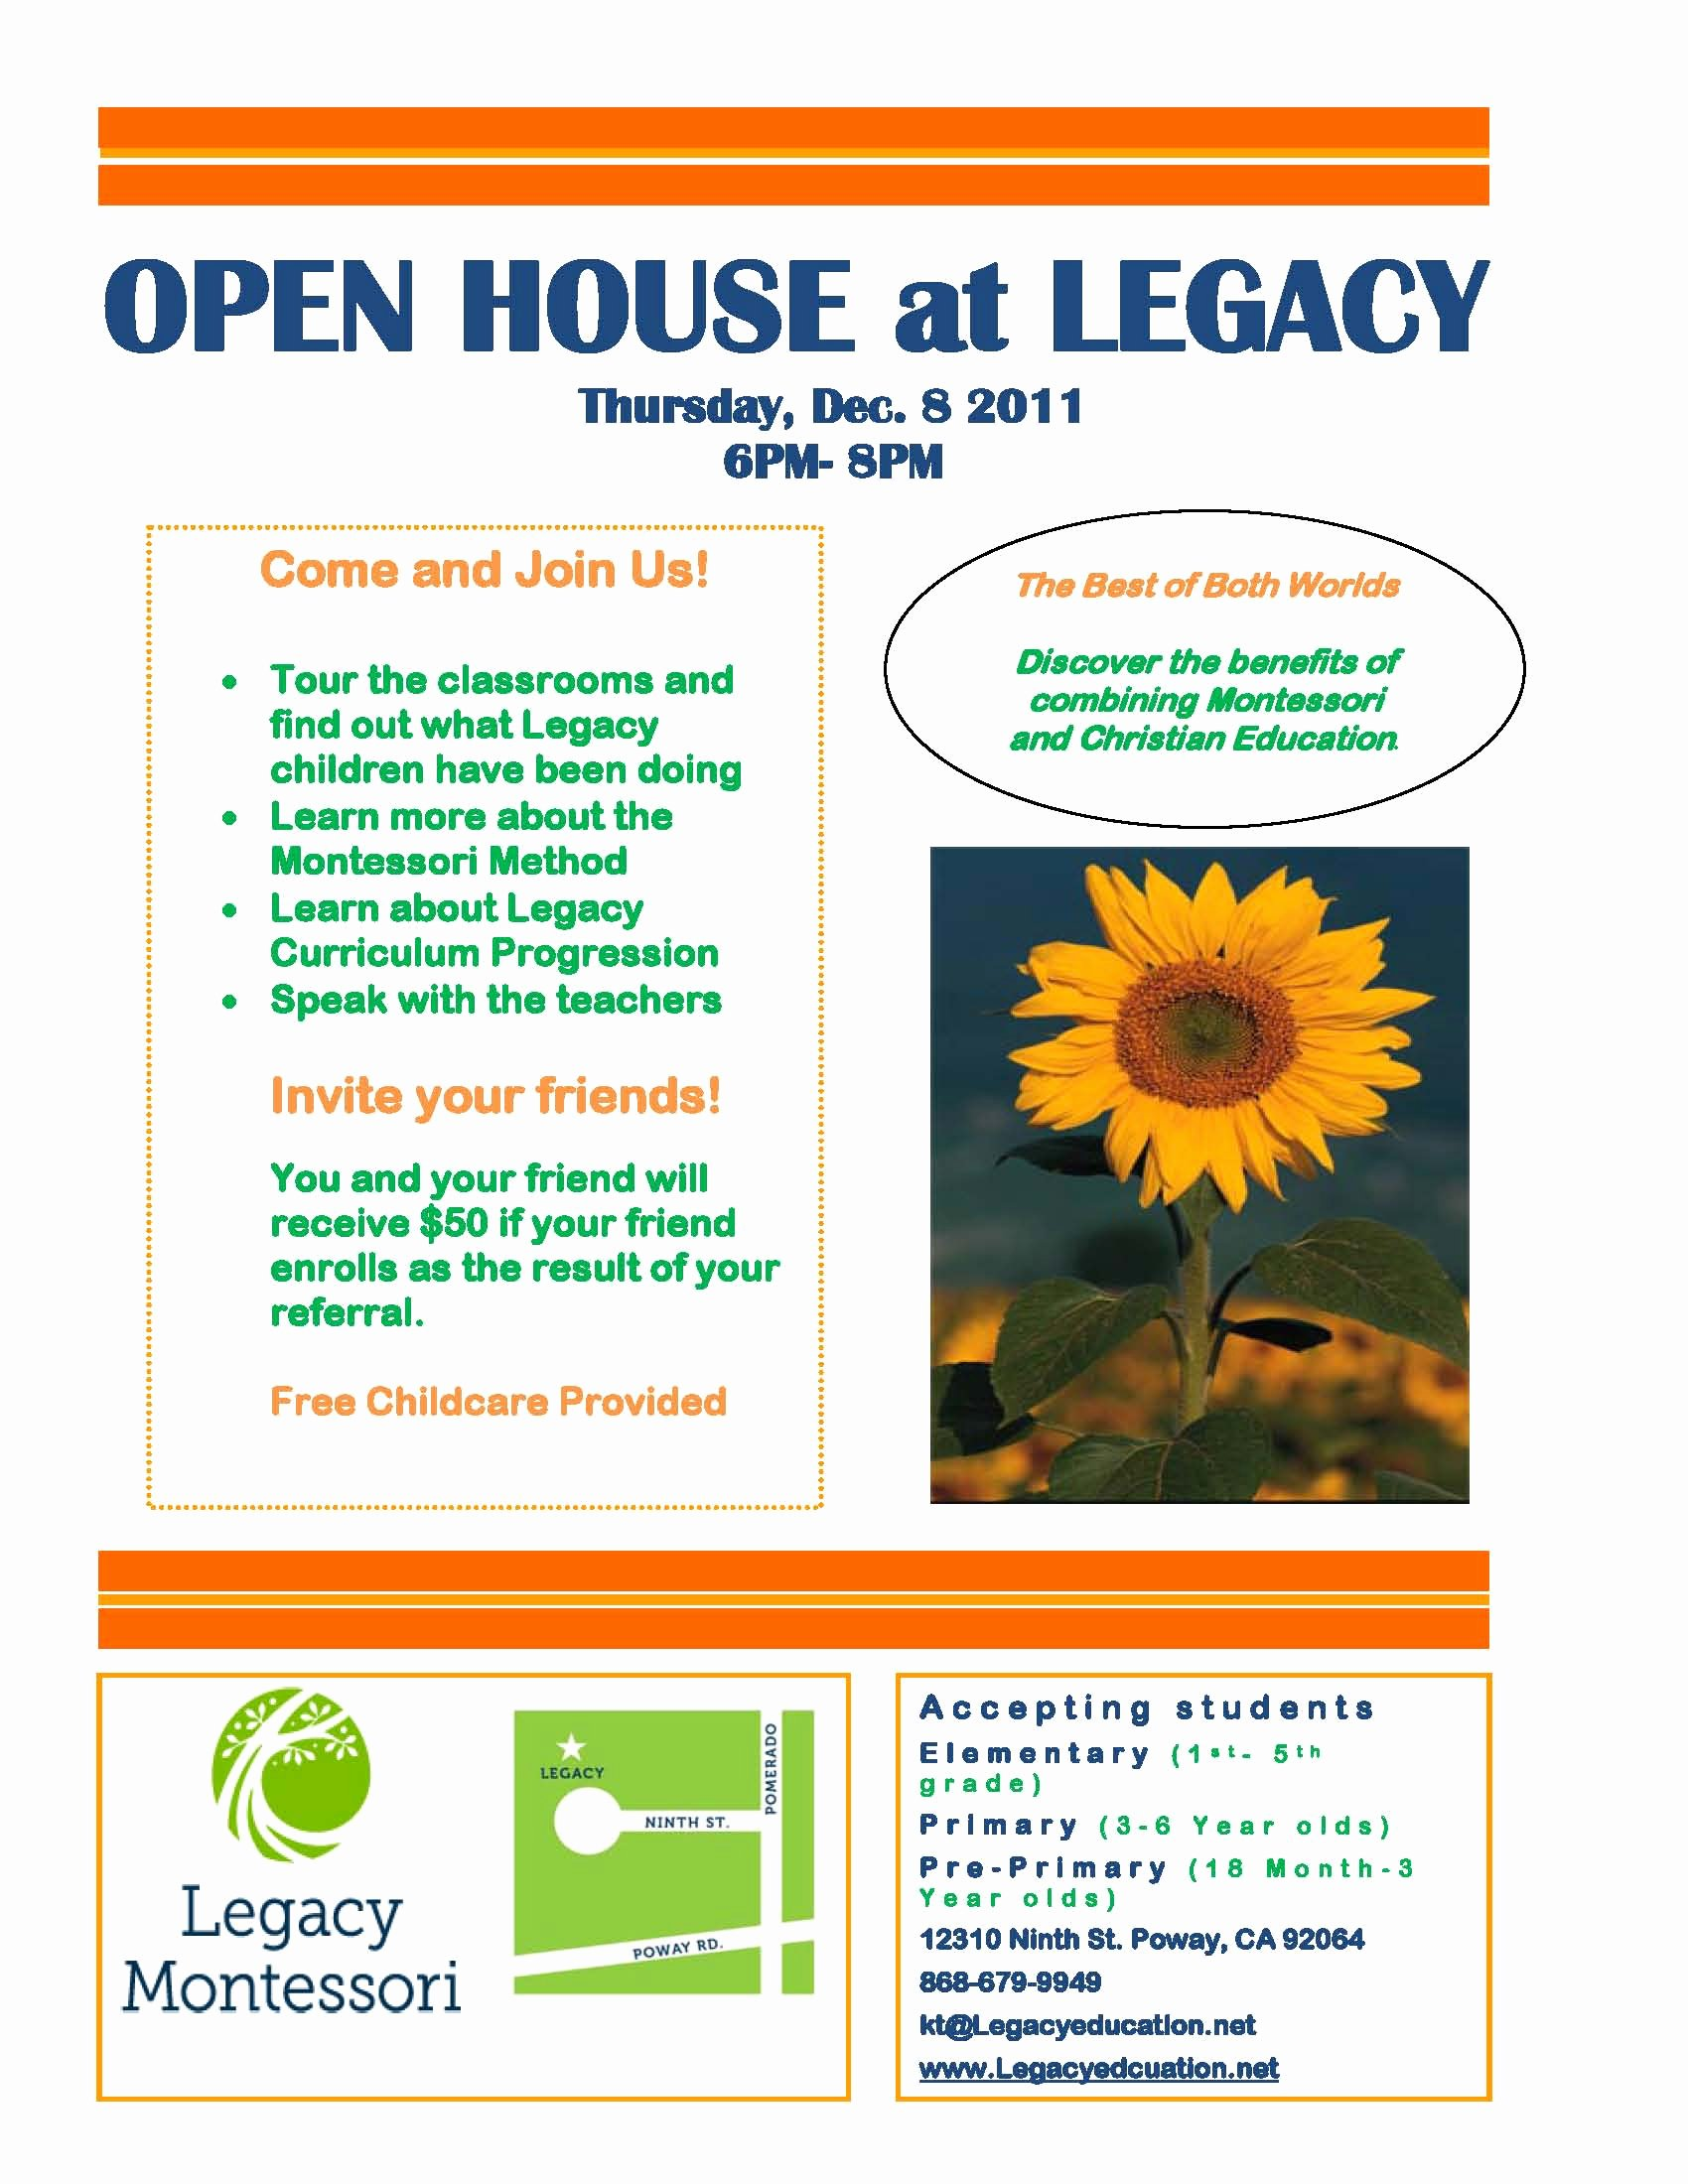 Open House Flyers Template Luxury Flyers I Like the Bright Colors Projects to Try Collection